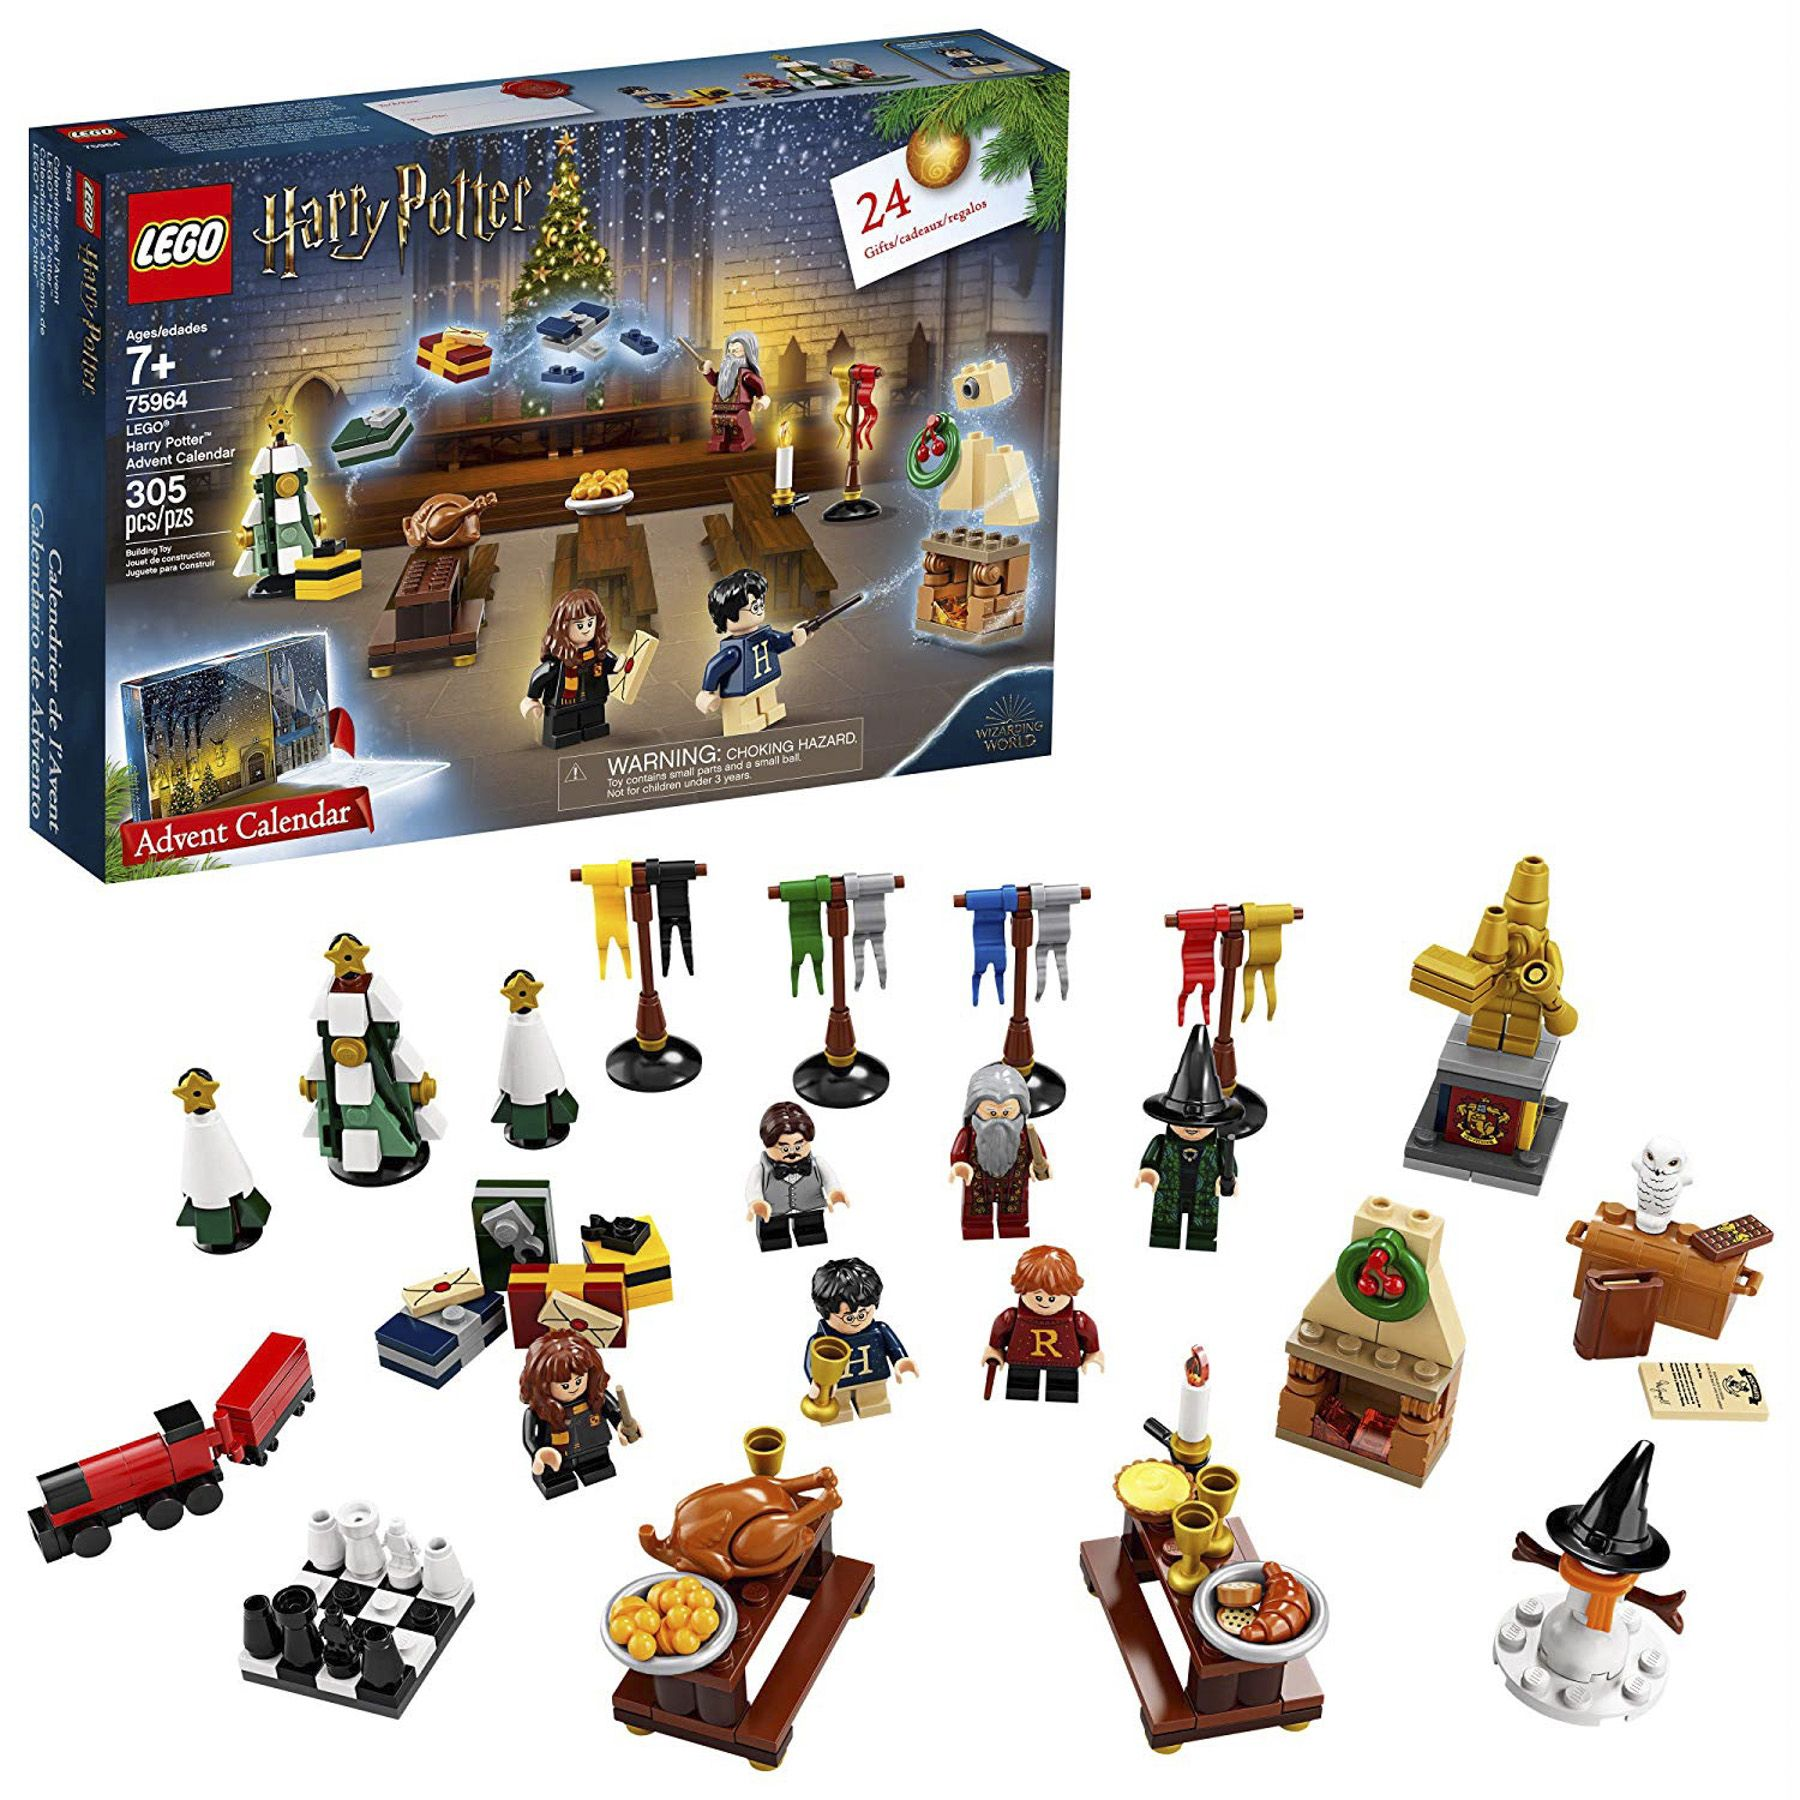 Lego S New Harry Potter And Star Wars Advent Calendars Are Finally Here With Over 200 Pieces Each Harry Potter Advent Calendar Lego Harry Potter Lego Advent Calendar